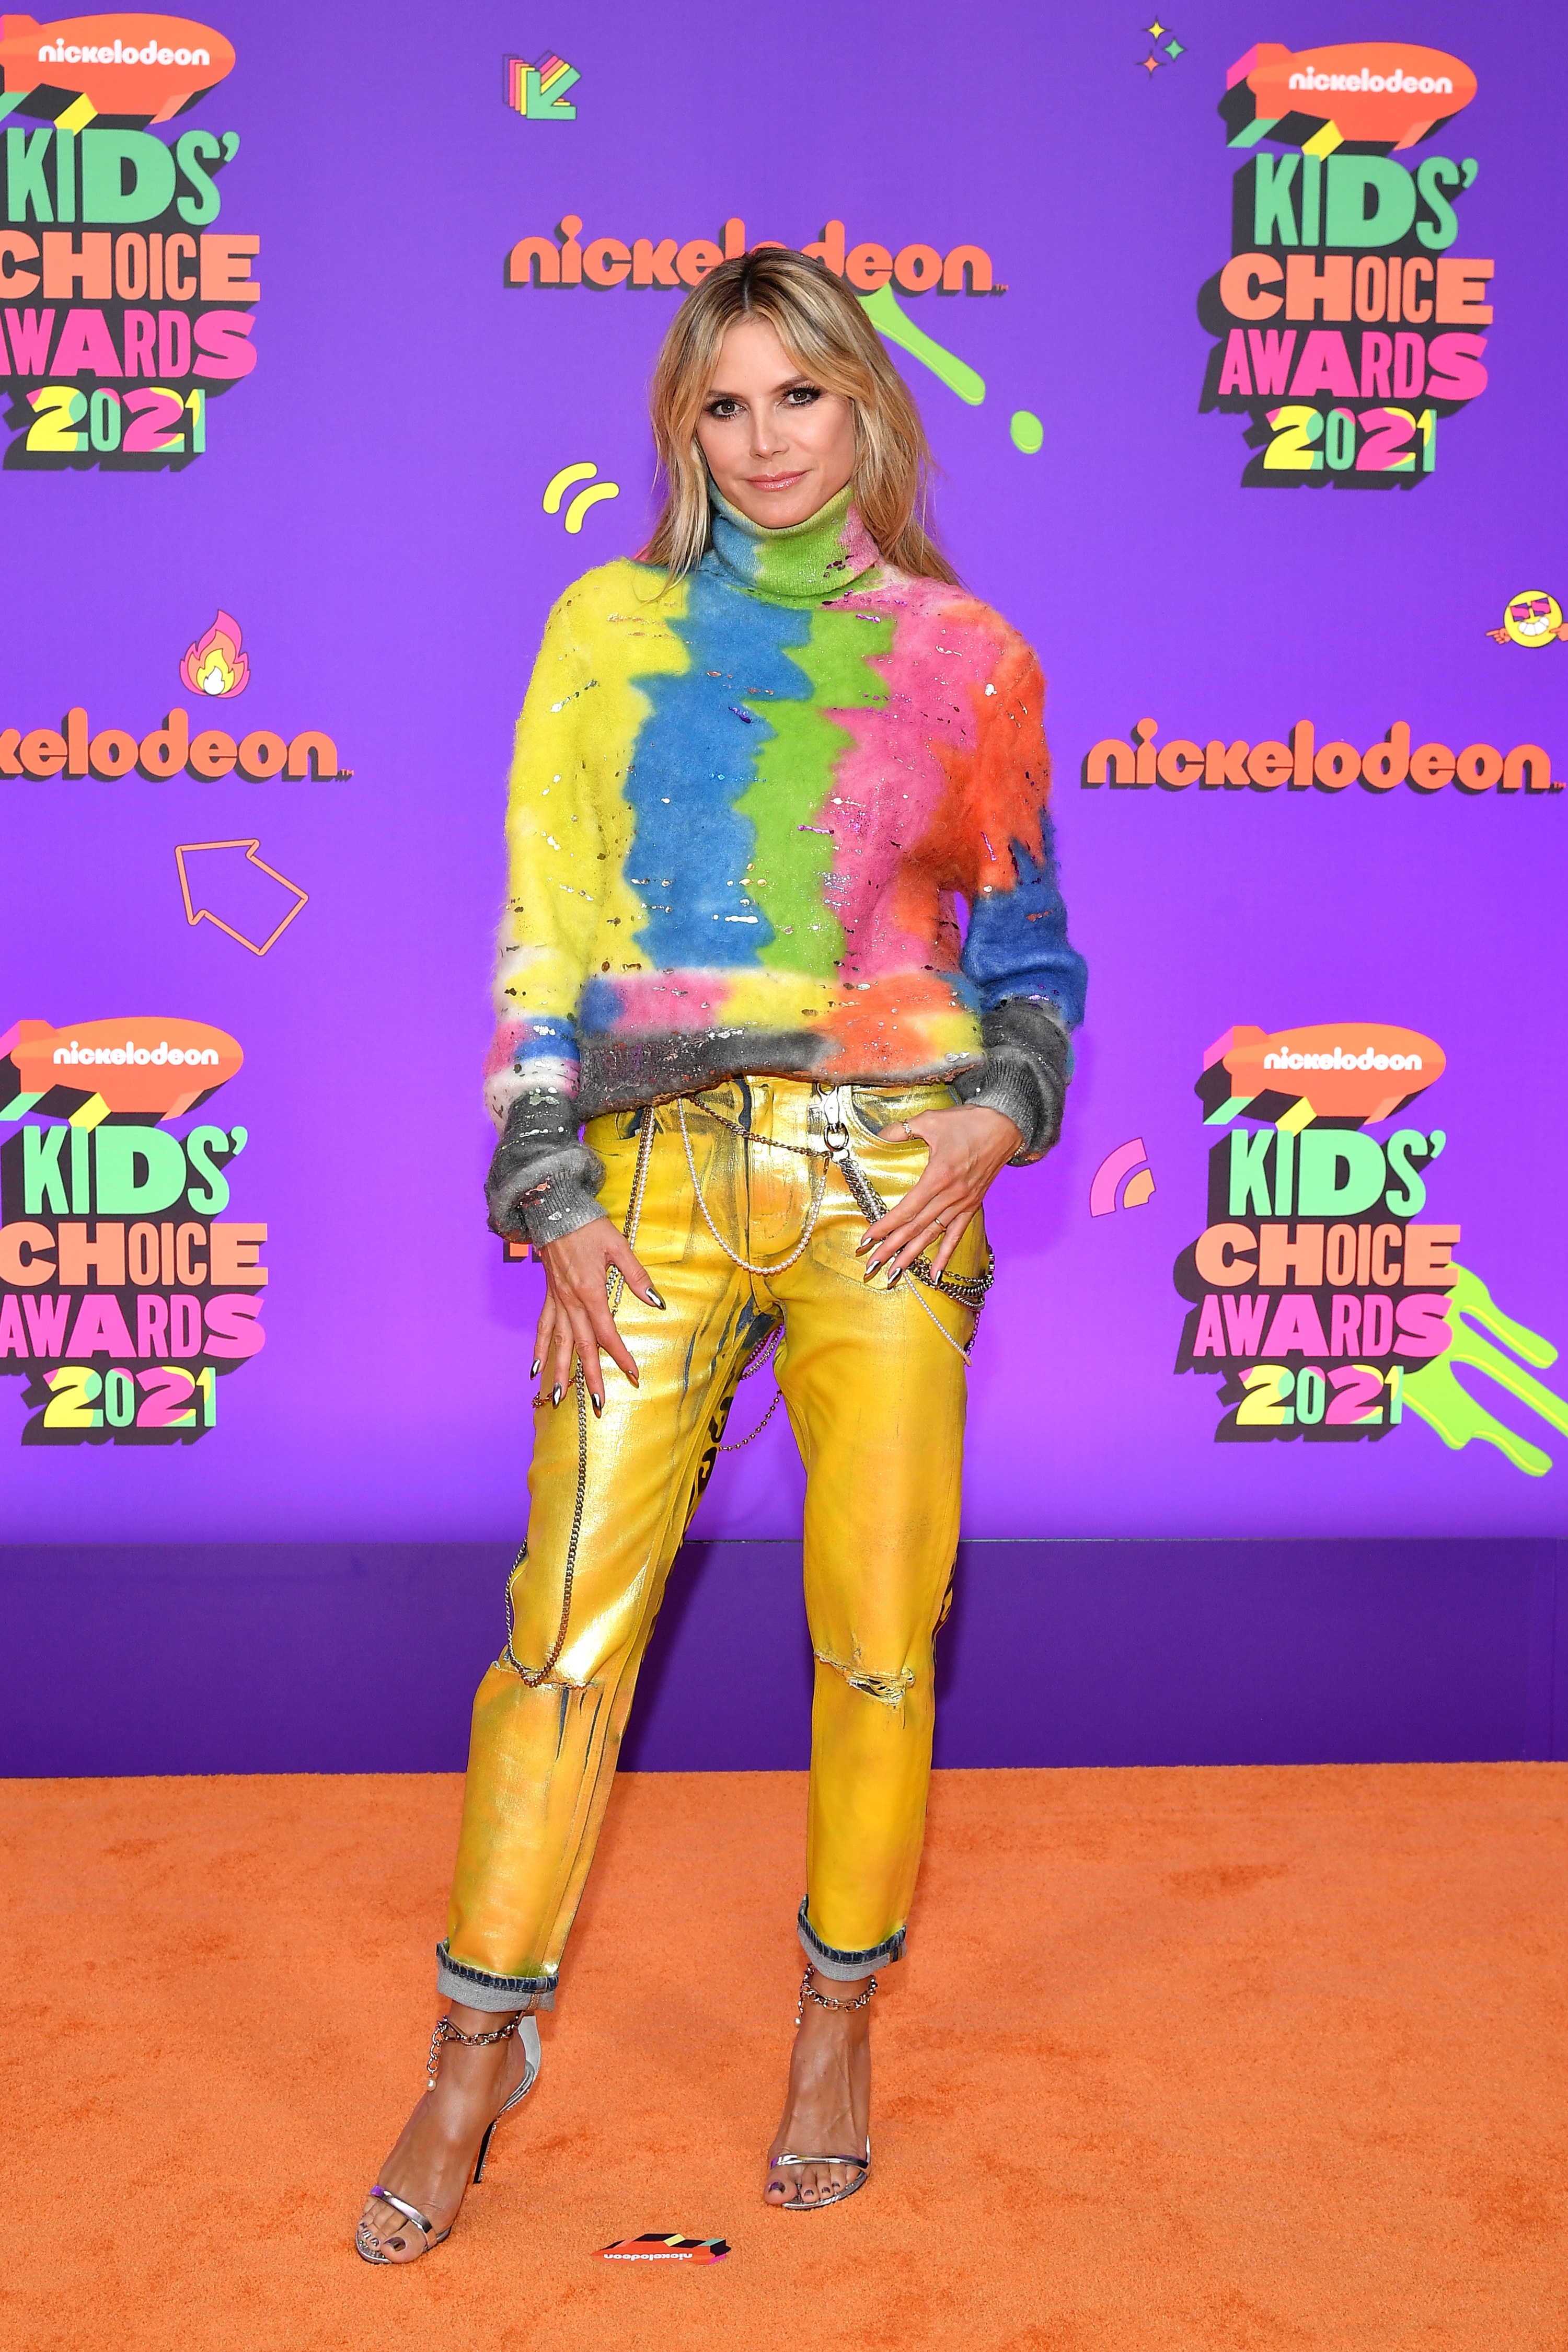 Heidi in a tie-dye turtleneck sweater and yellow jeans